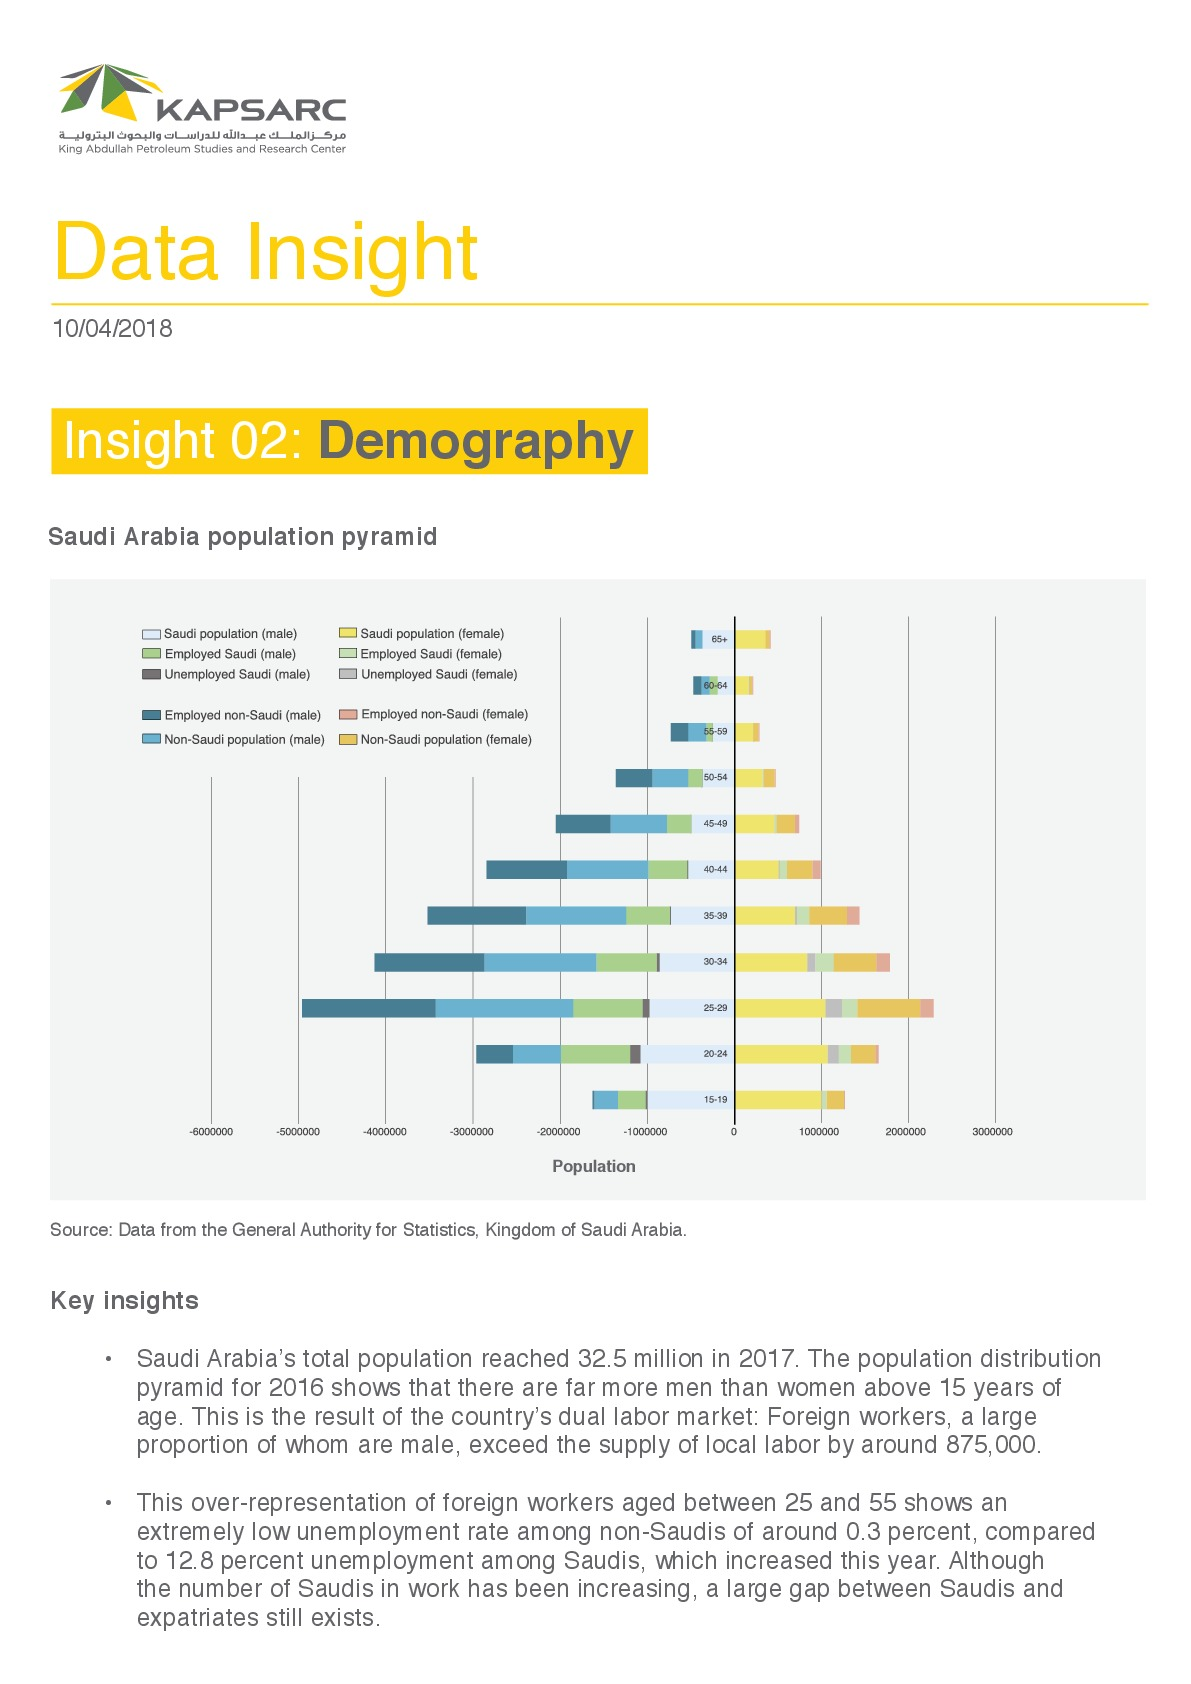 Data Insight: Demography